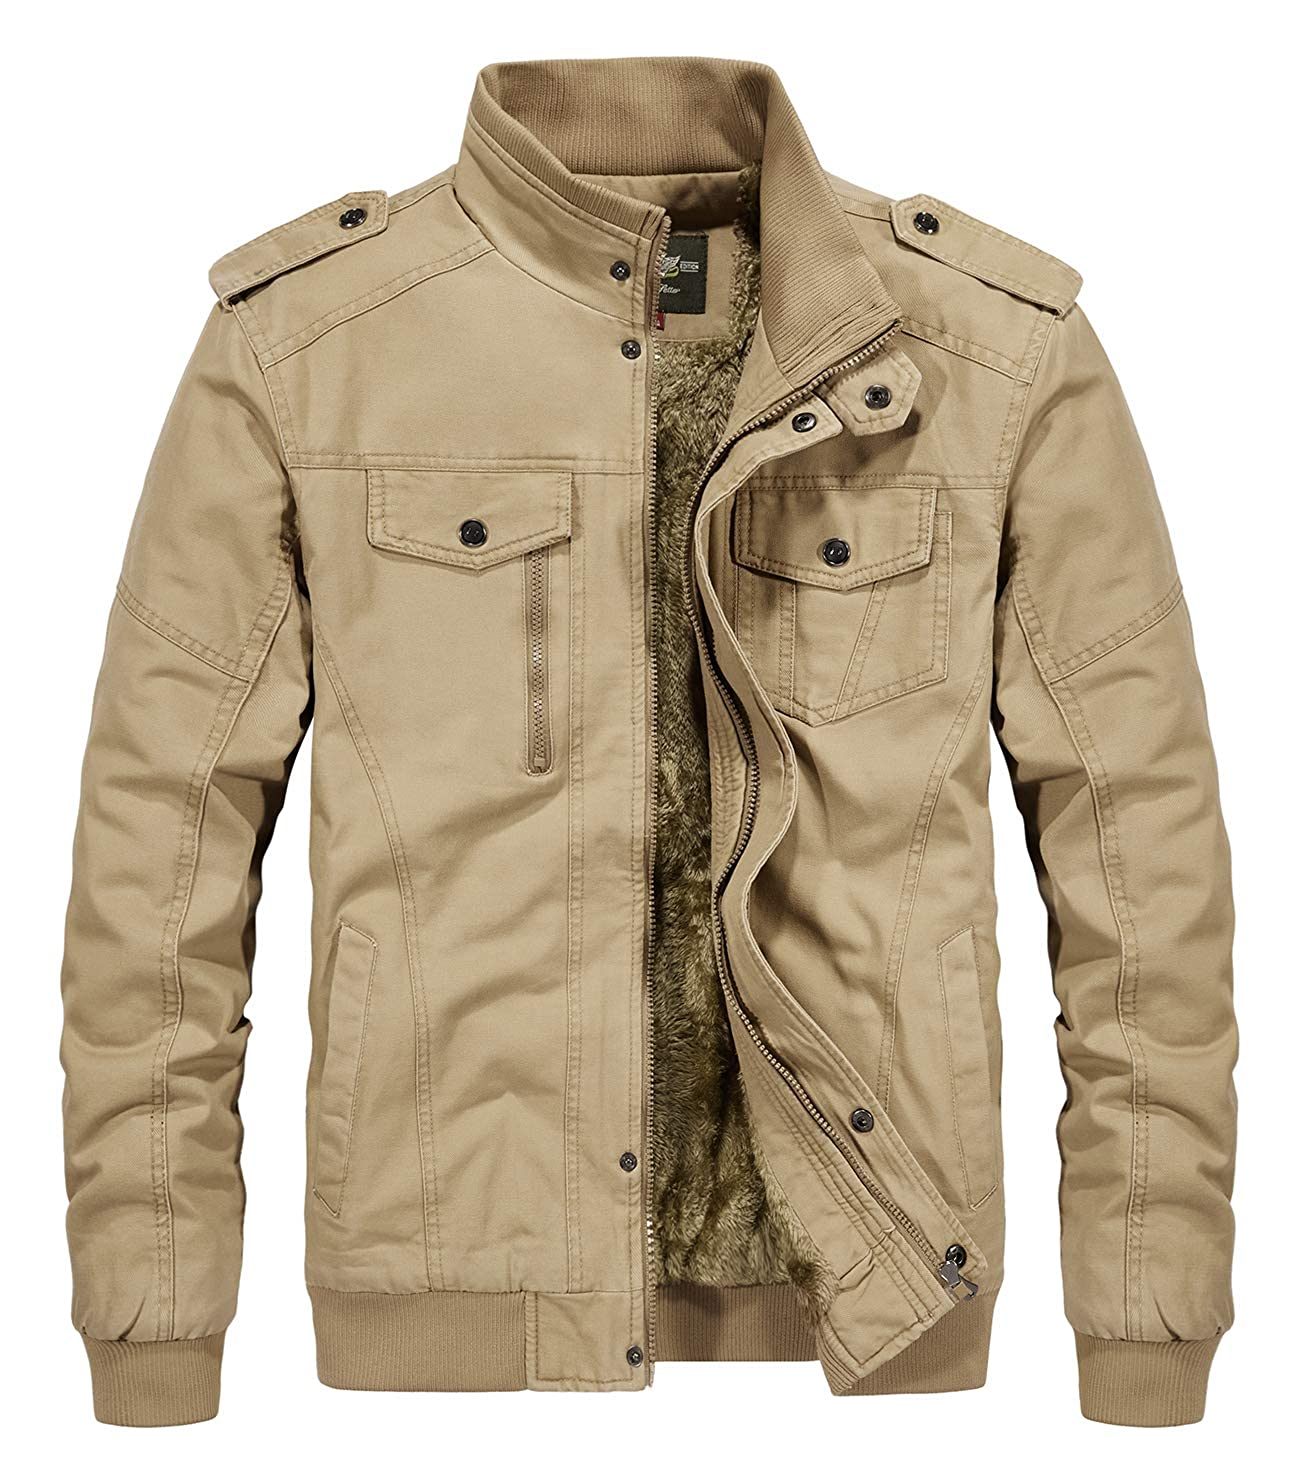 RongYue Men's Winter Thicken Military Jacket Cotton Stand Collar Outwear Coats